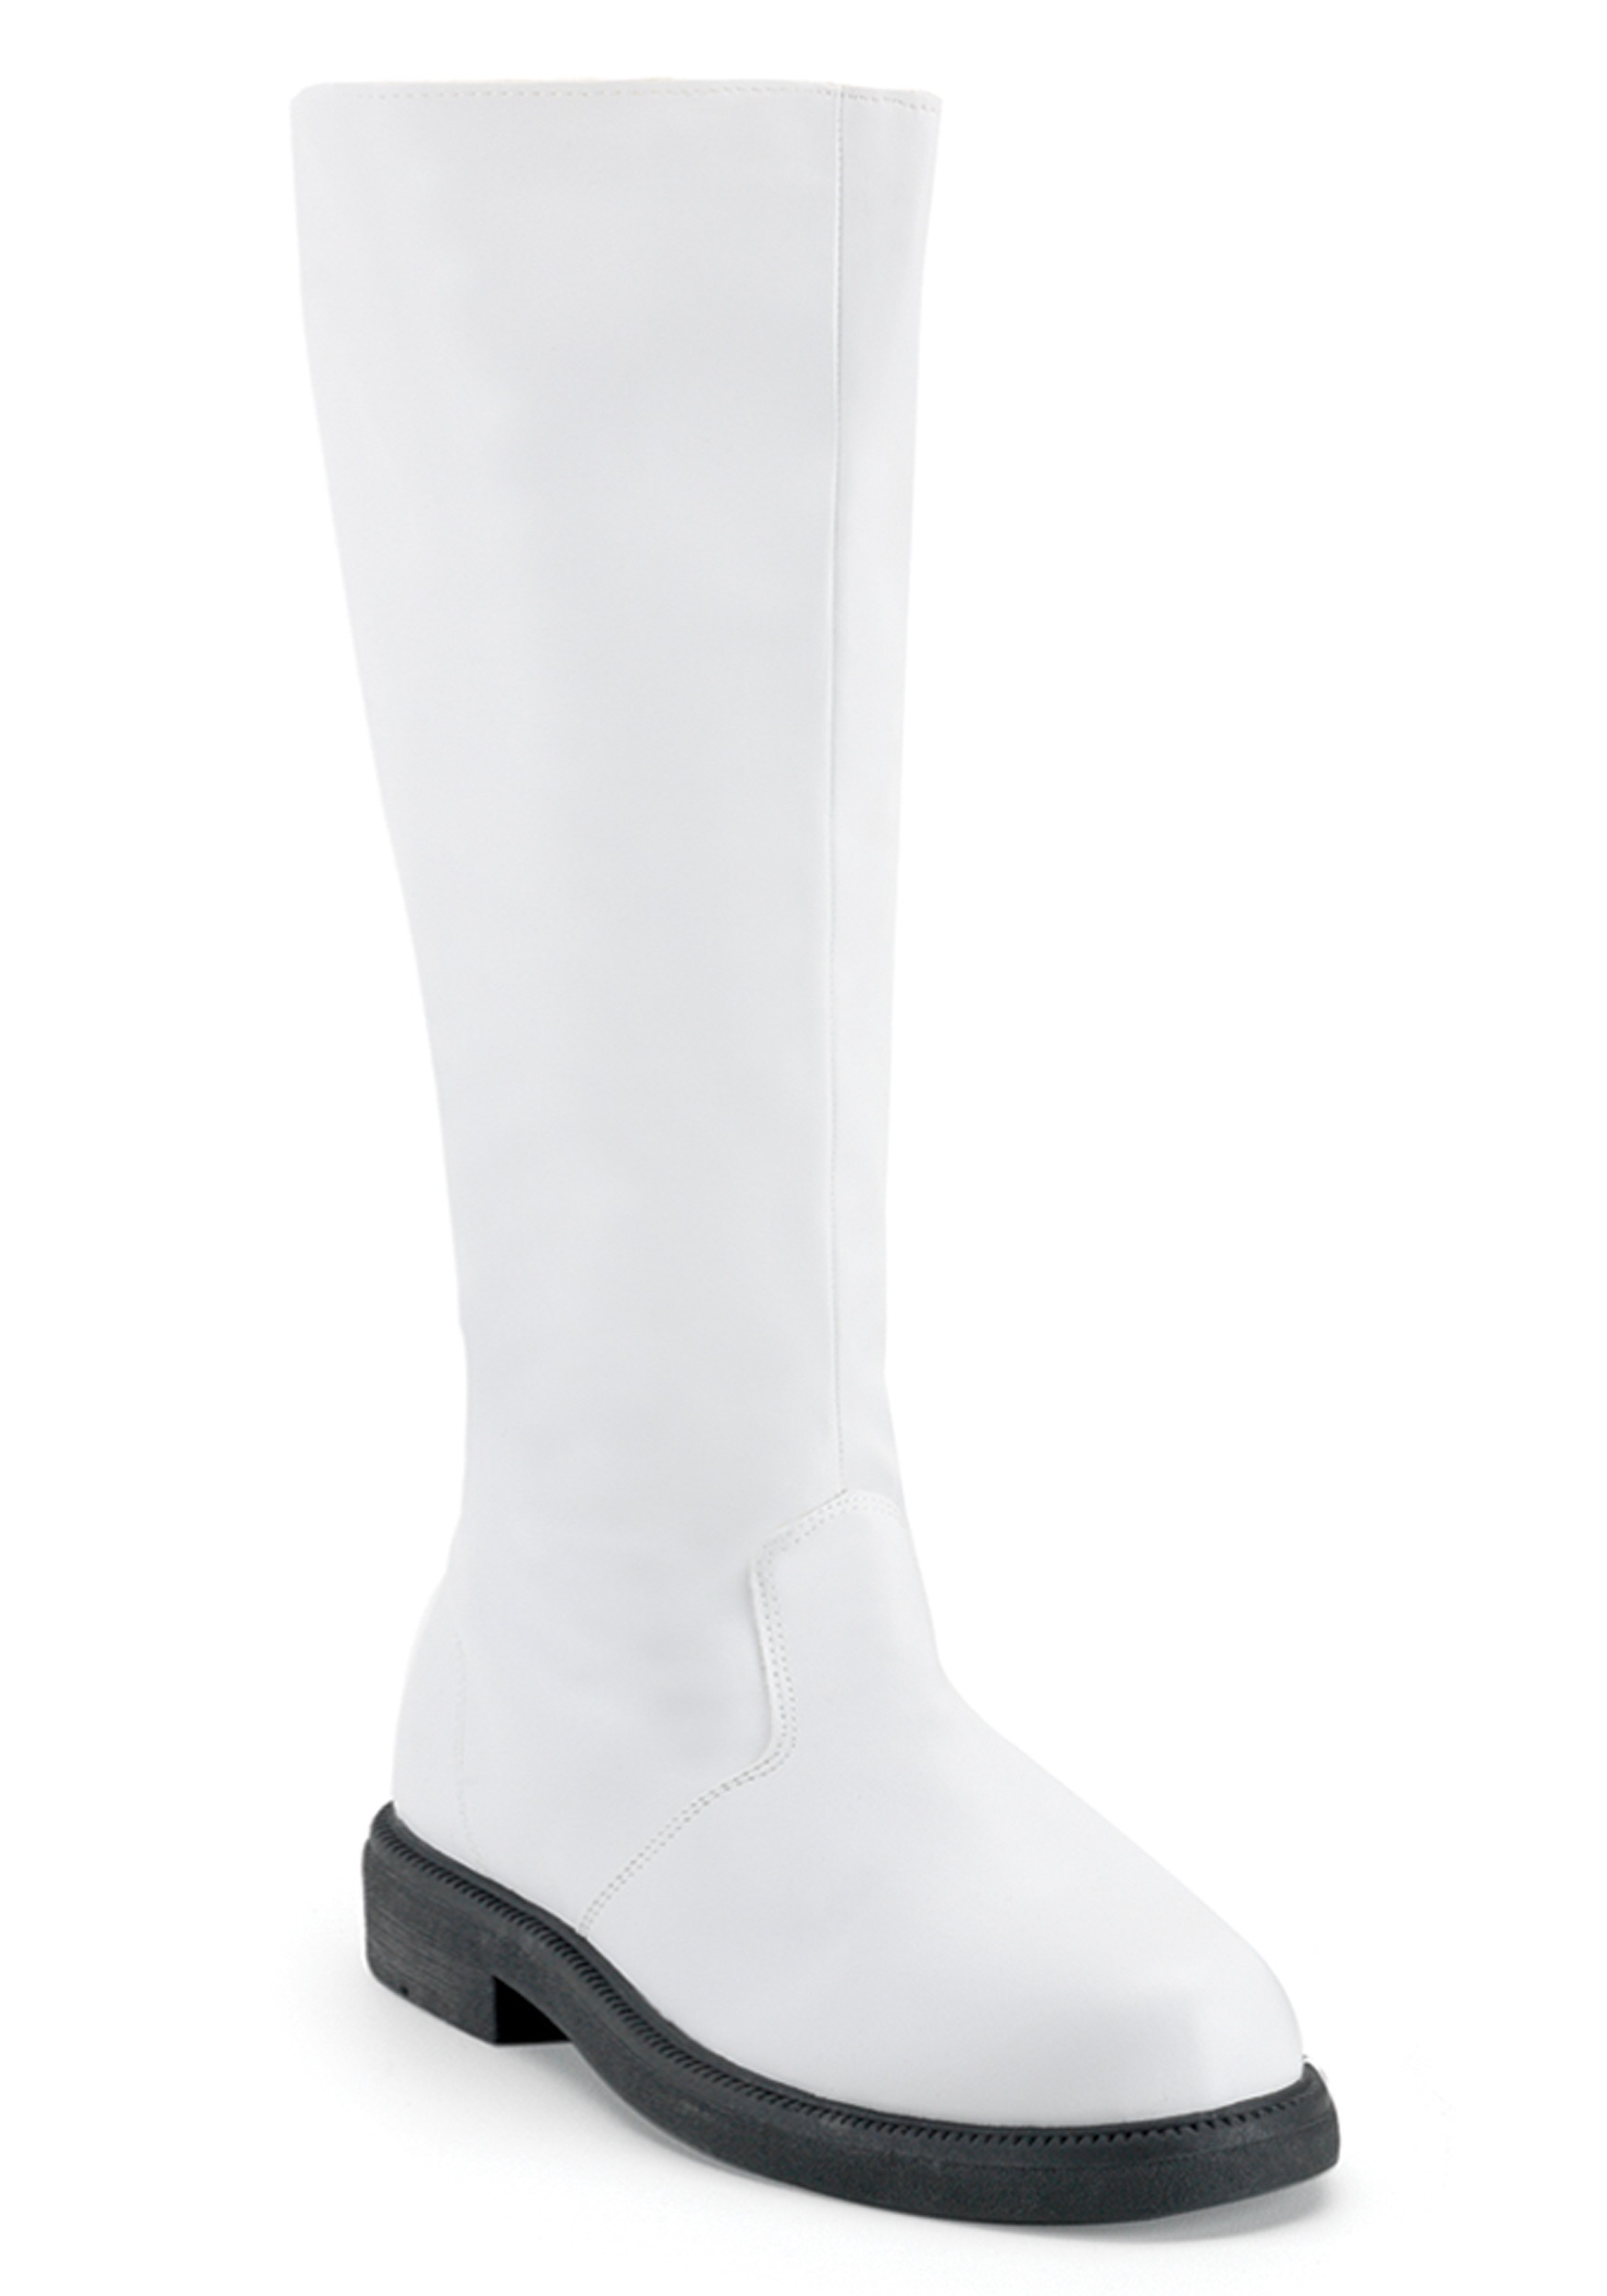 White Boots For Men tv50pmRd